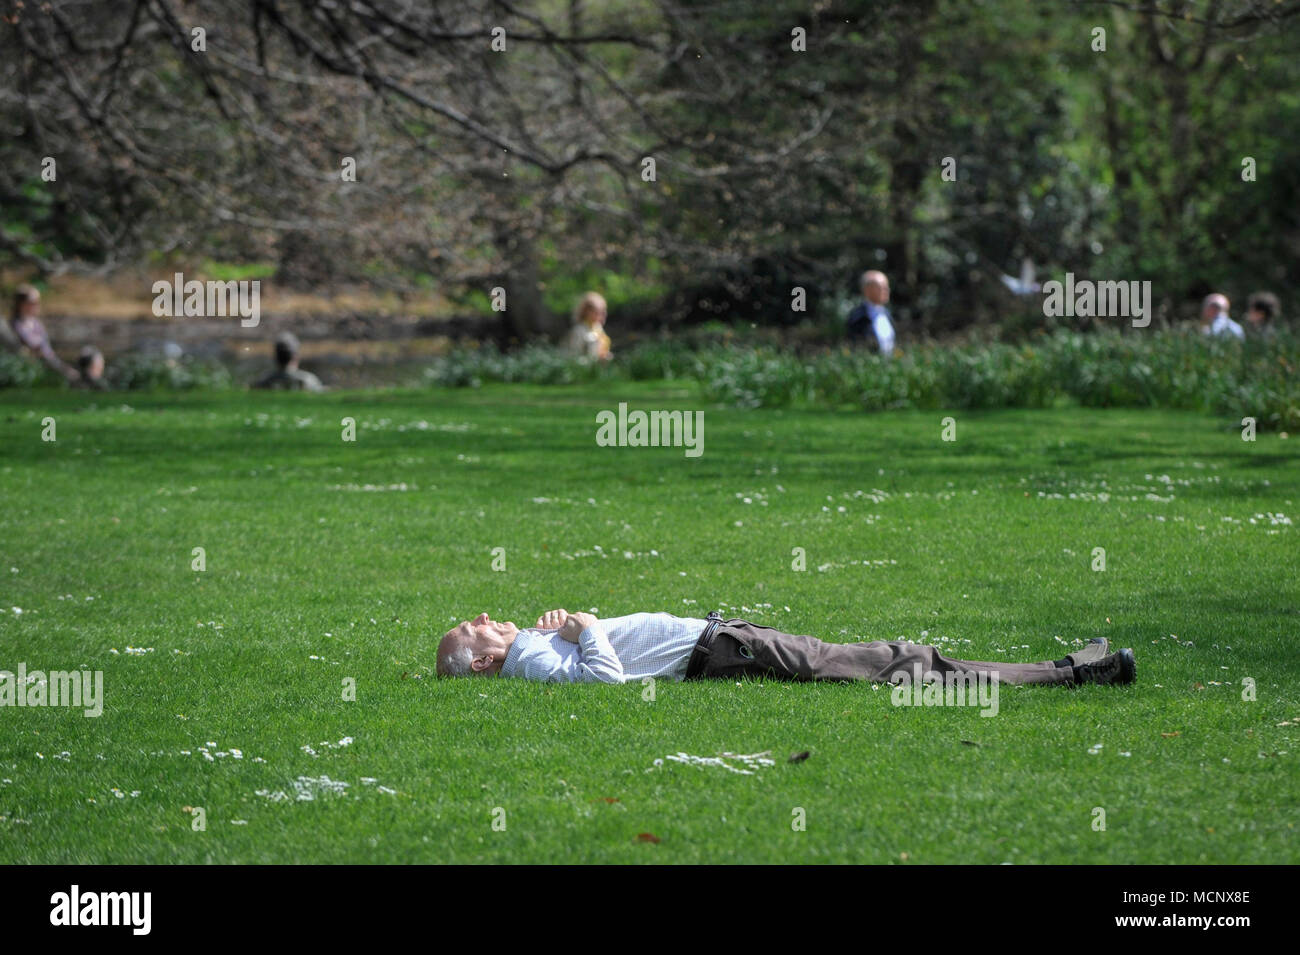 London, UK.  17 April 2018.  UK Weather: A man snoozes enjoying the warm weather in St. James's Park.   Much warmer temperatures of 25C are forecast to arrive in the UK in the next few days.  Credit: Stephen Chung / Alamy Live News - Stock Image